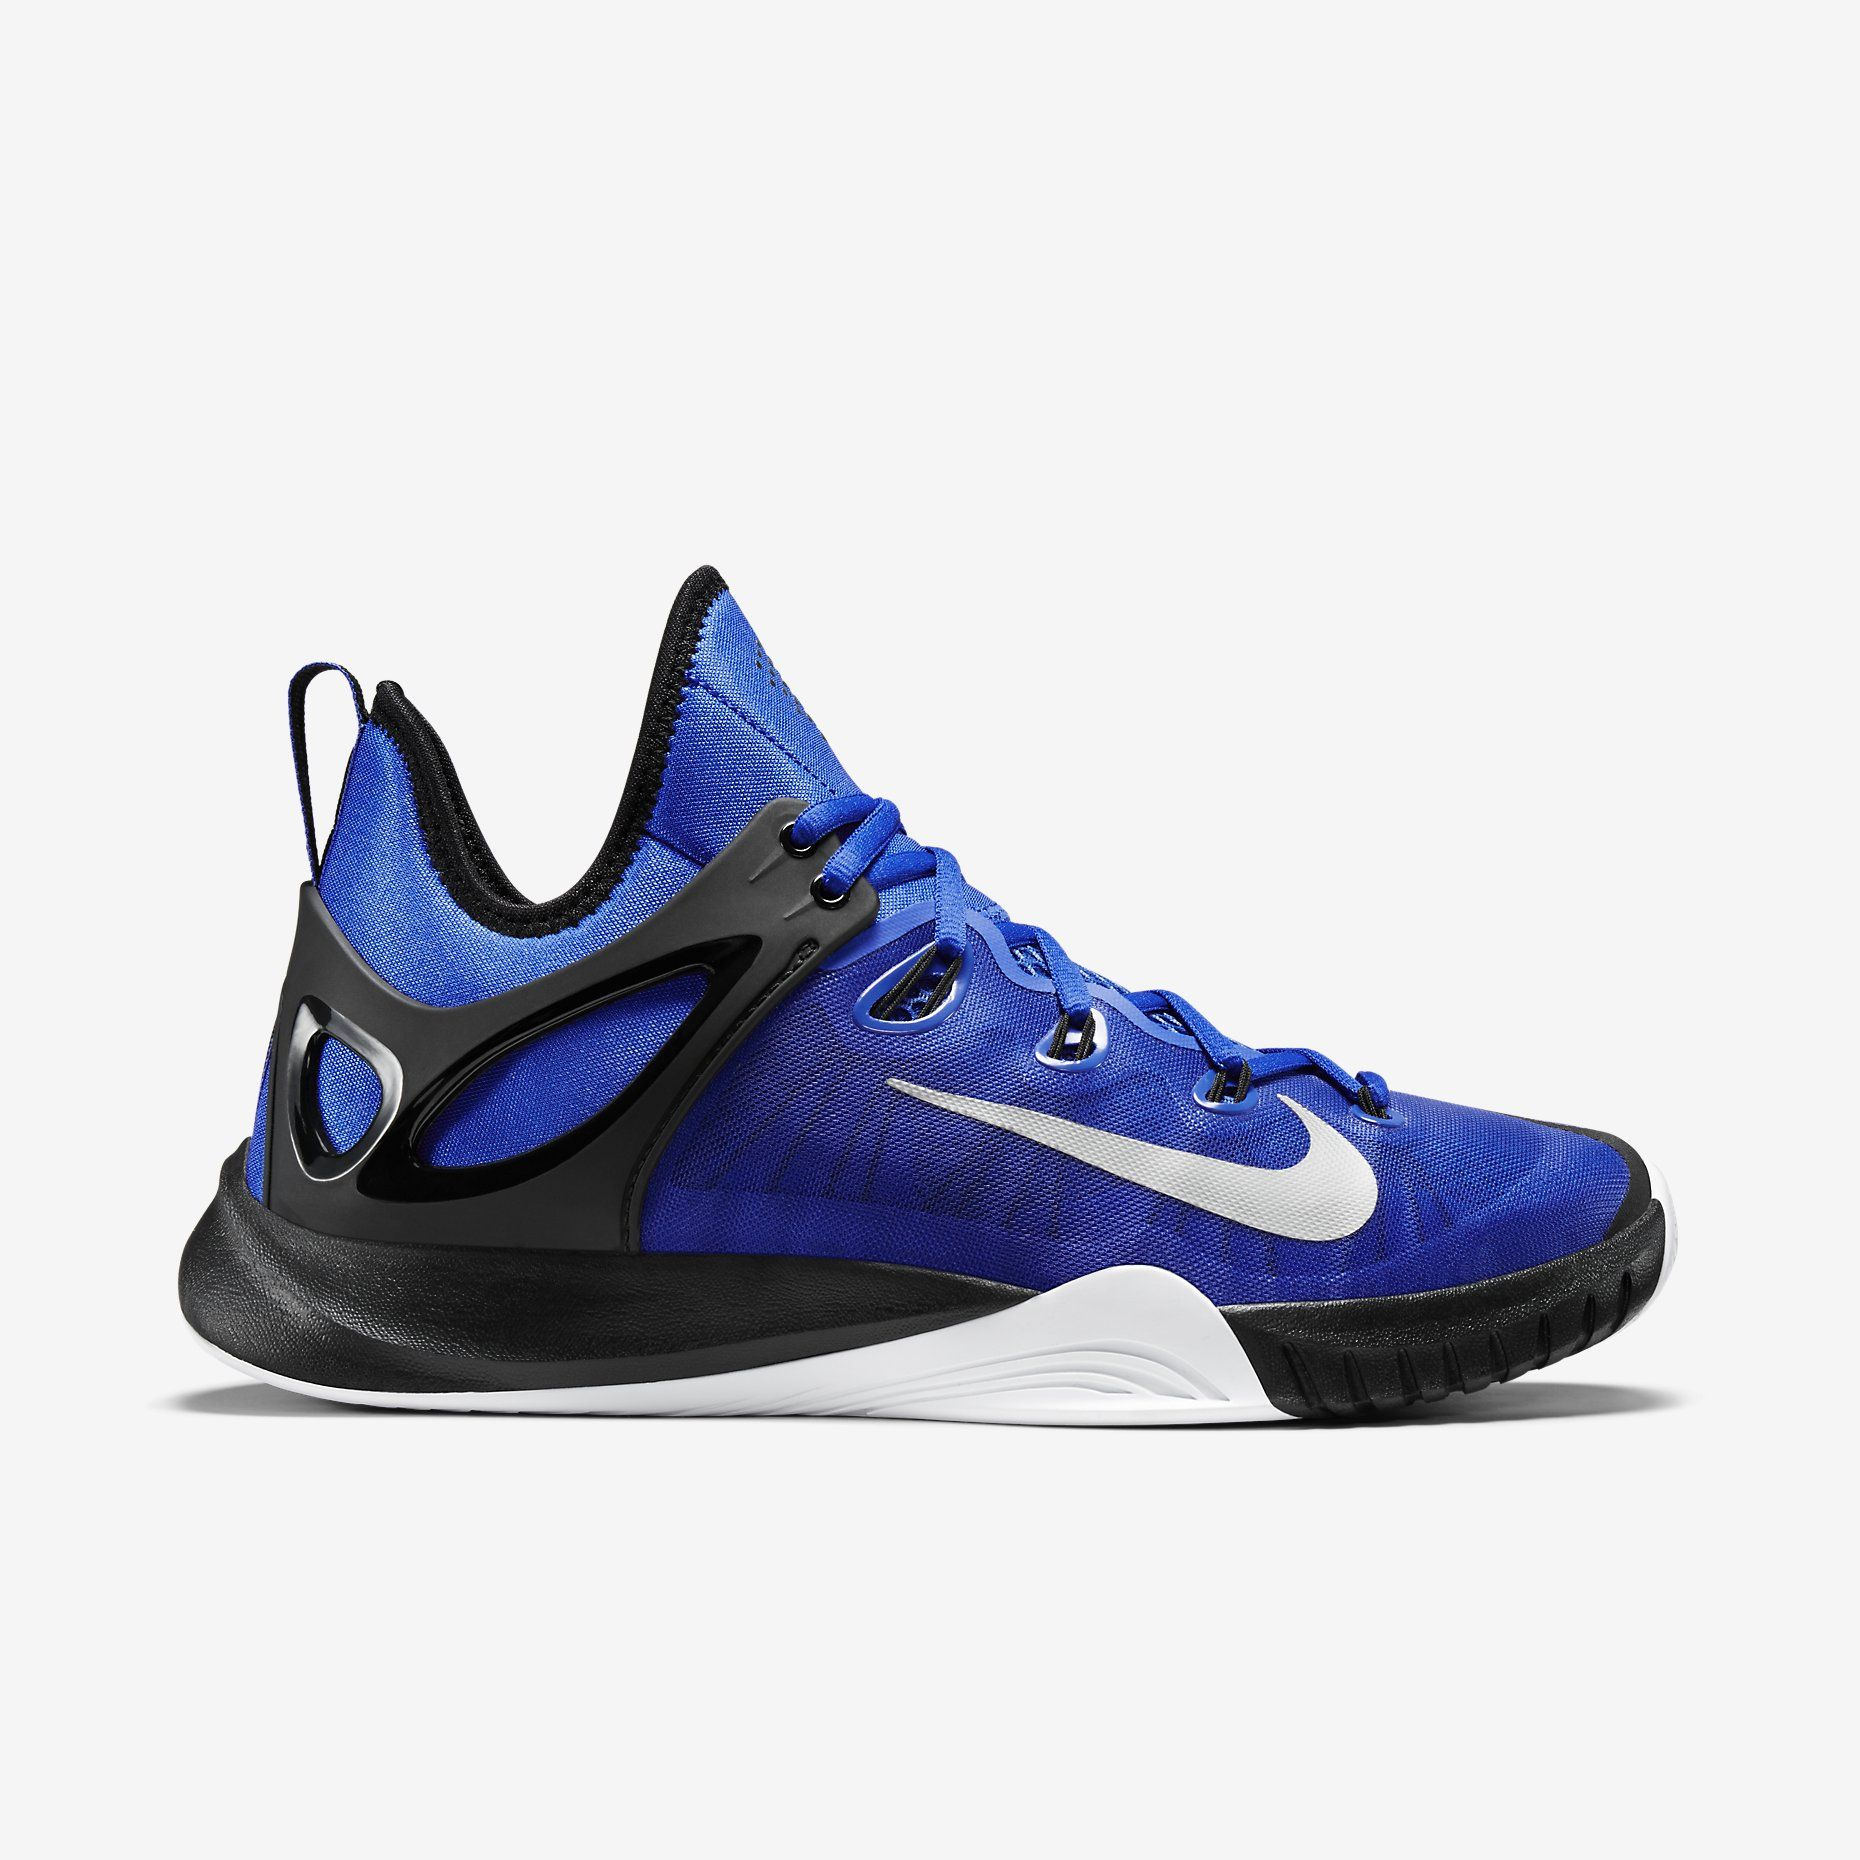 b047e6ed5817 Nike Zoom HyperRev 2015 Men s Basketball Shoe. Get fabulous discounts up to  30% Off at Nike using Discount and Voucher Codes.